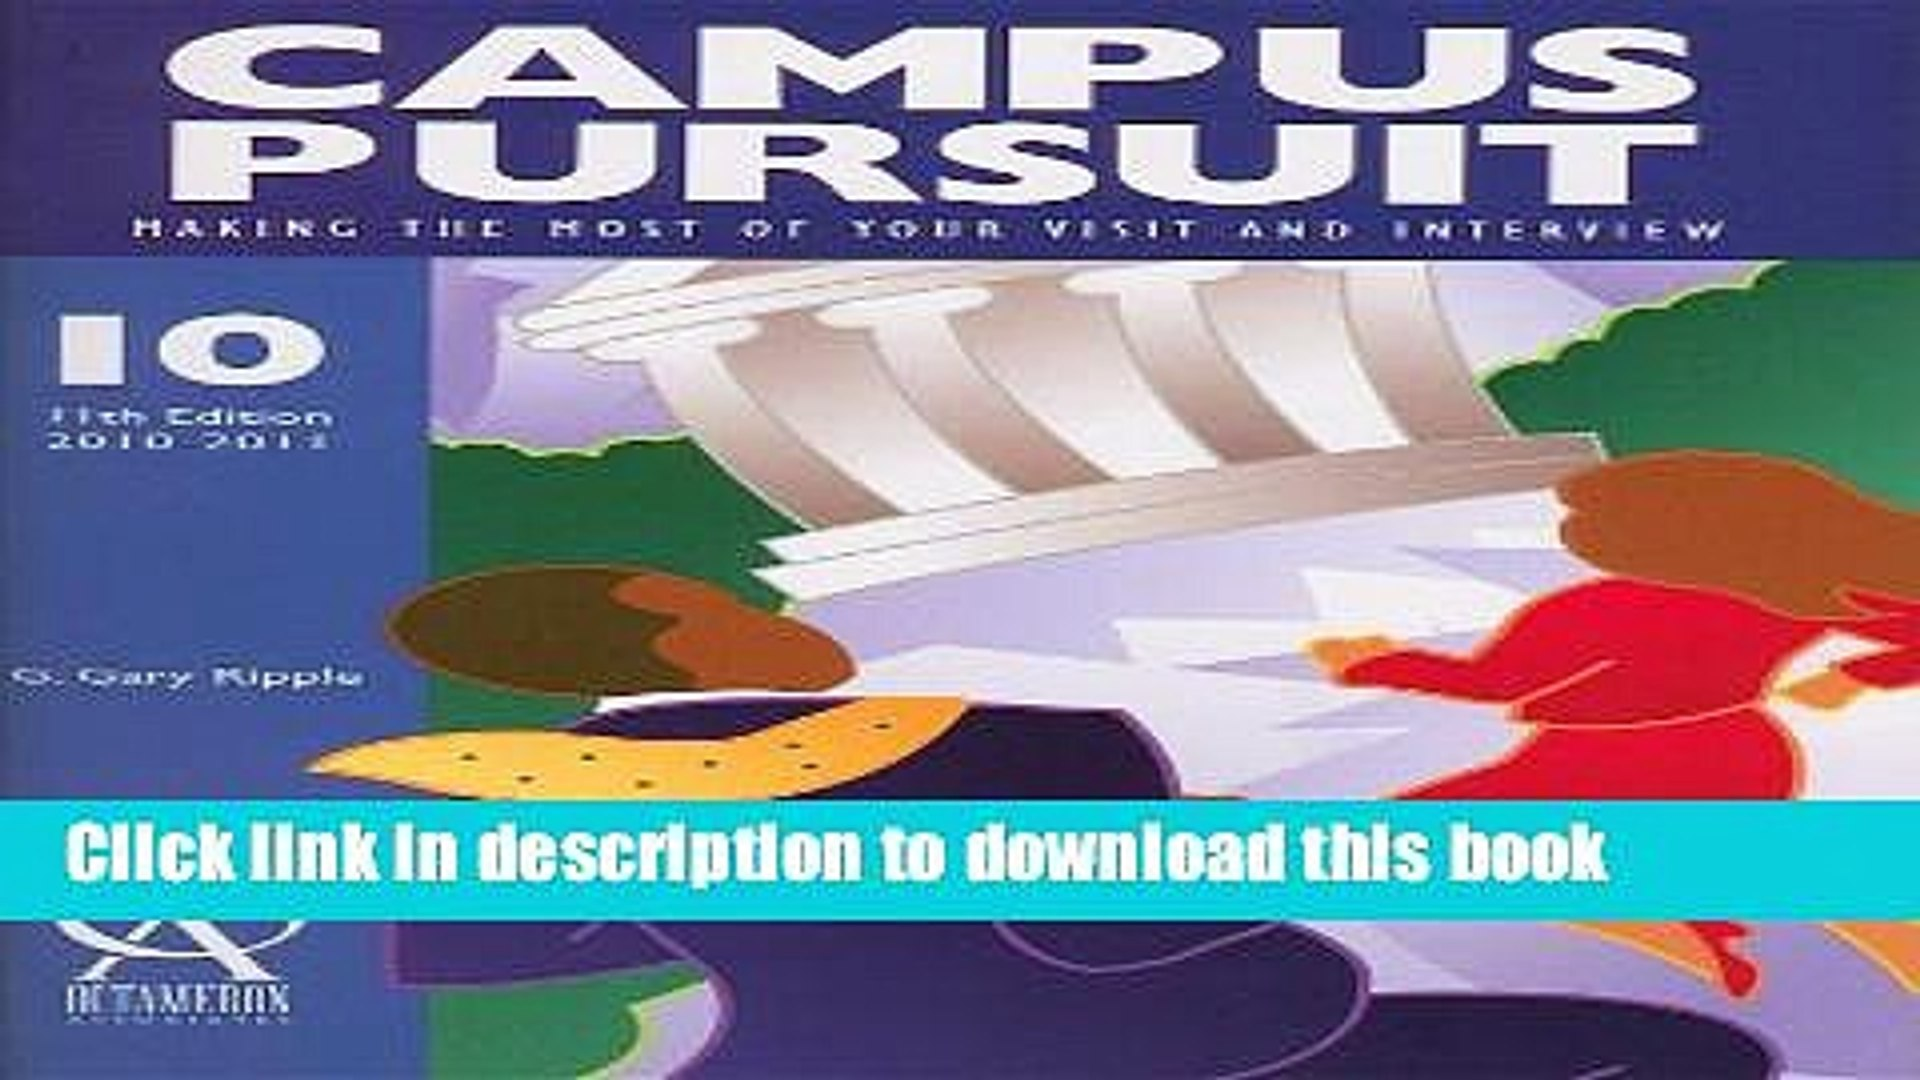 Books Campus Pursuit: Making the Most of Your Visit And Interview (Campus Pursuit: How to Make the